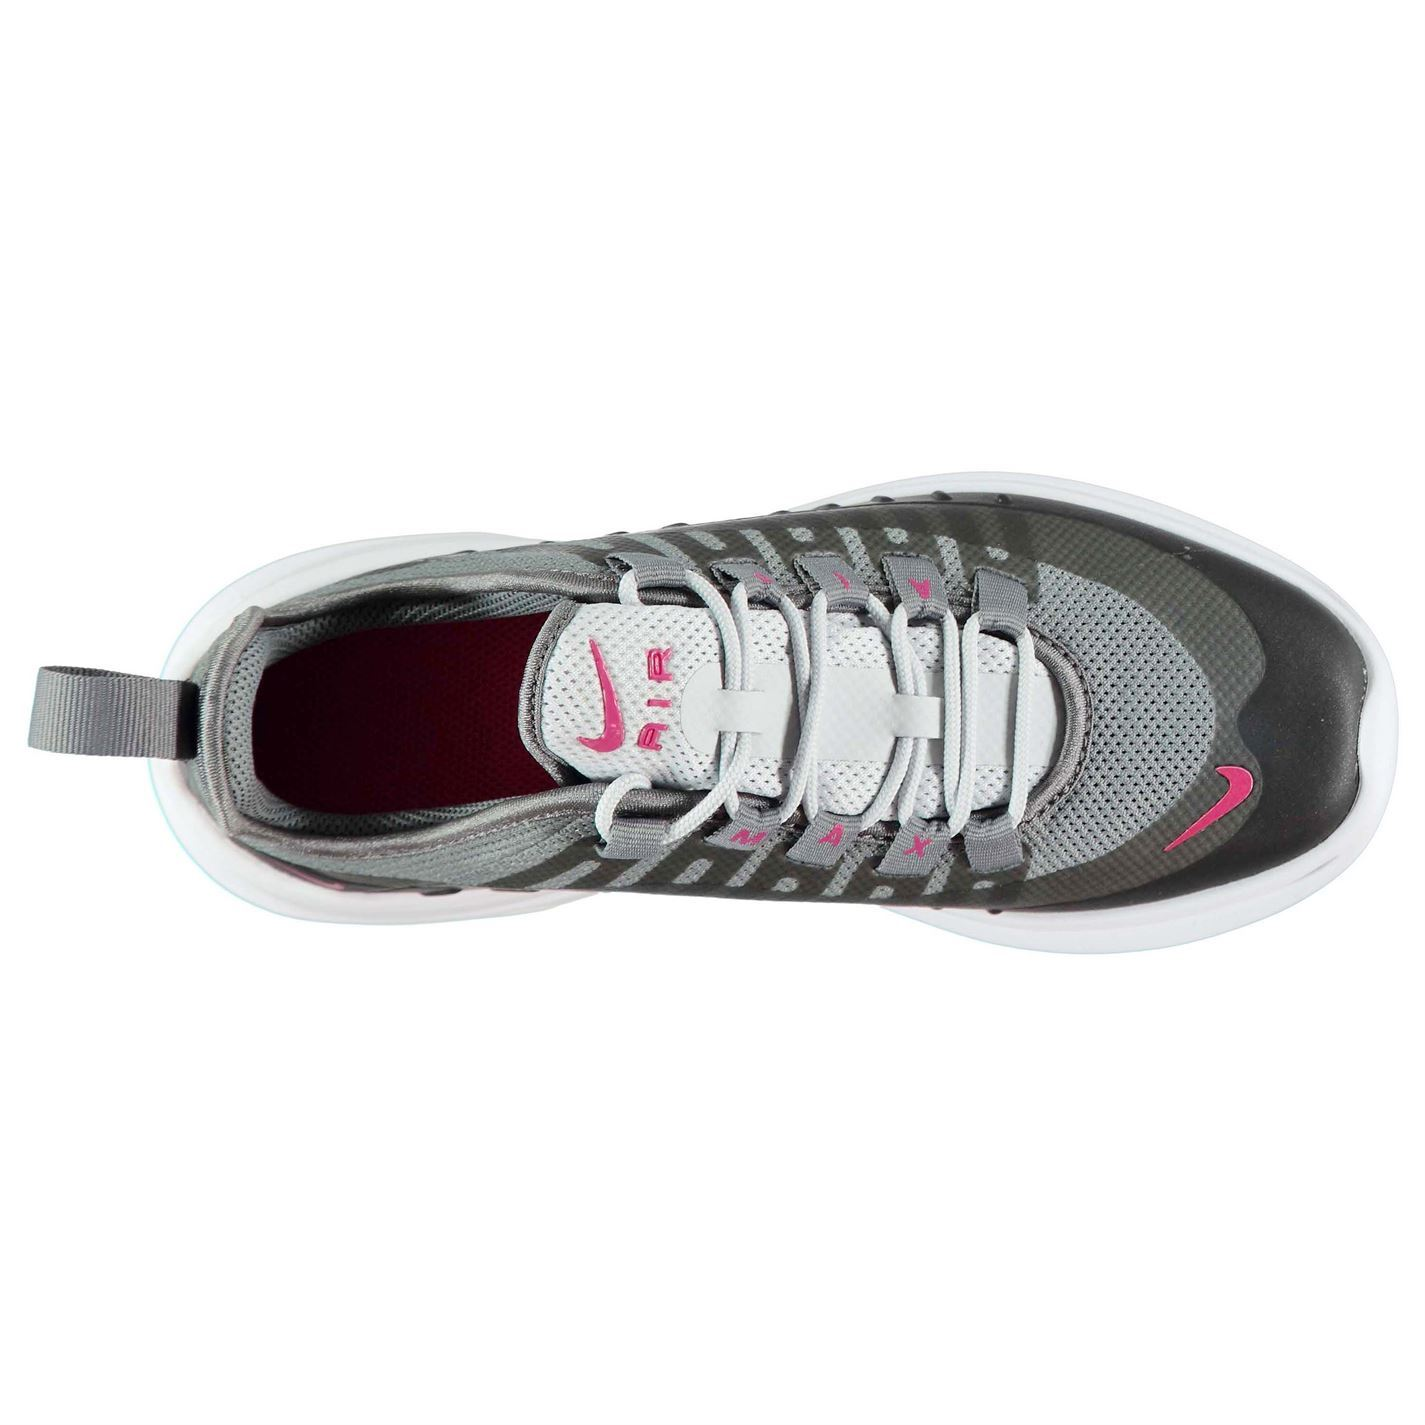 Details about Nike Air Max Axis Trainers Junior Girls BlackPink Shoes Footwear